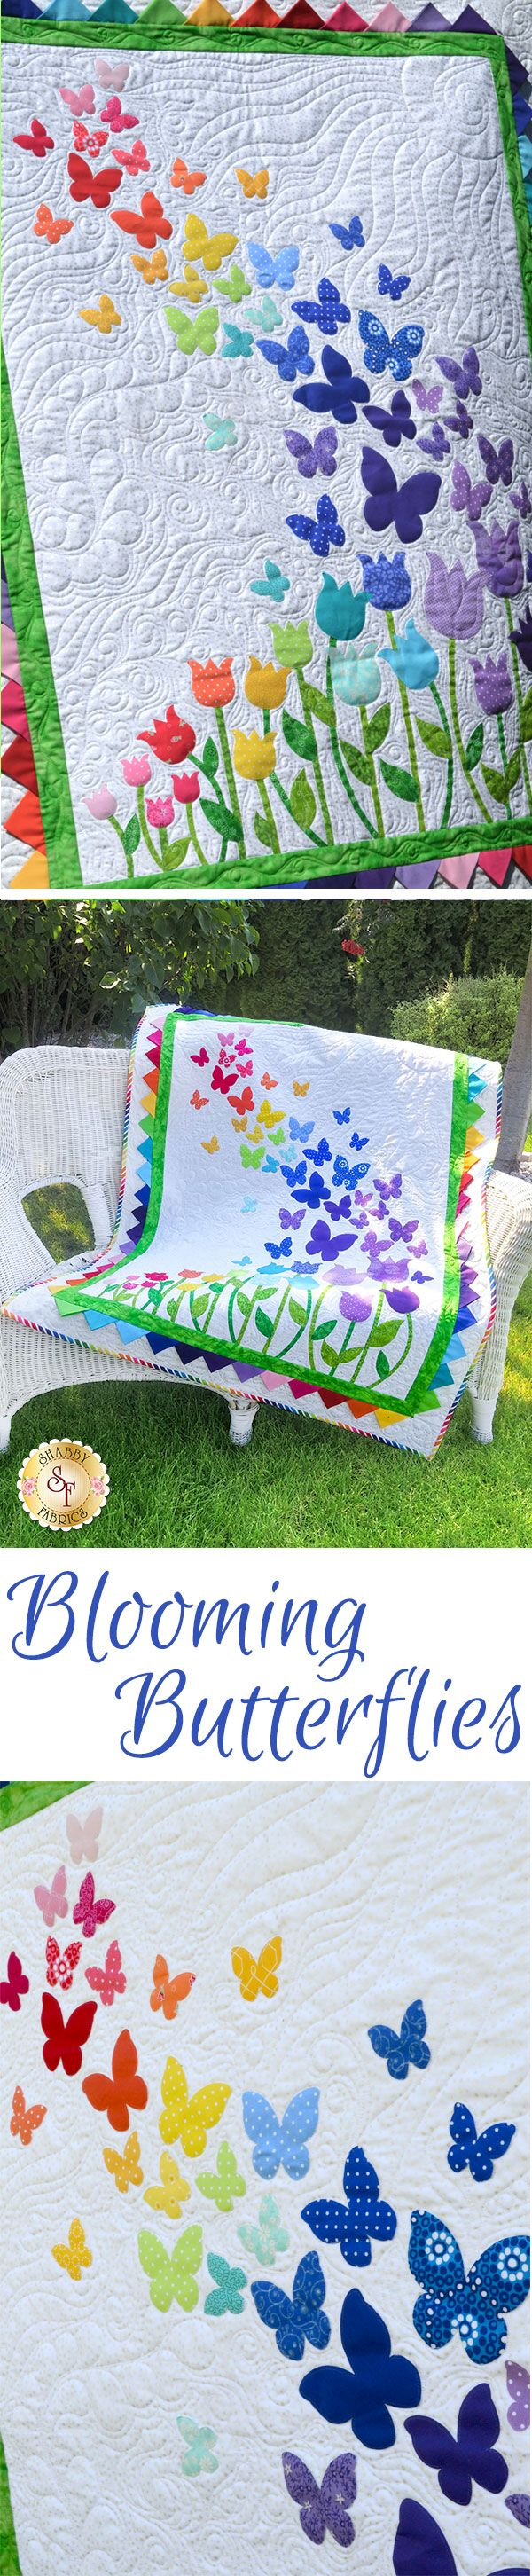 "Brighten your little girls room with this darling Blooming Butterflies Quilt! This 40½"" x 51½"" quilt features a beautiful array of butterflies floating on a gentle breeze over a bed of blooming tulips."